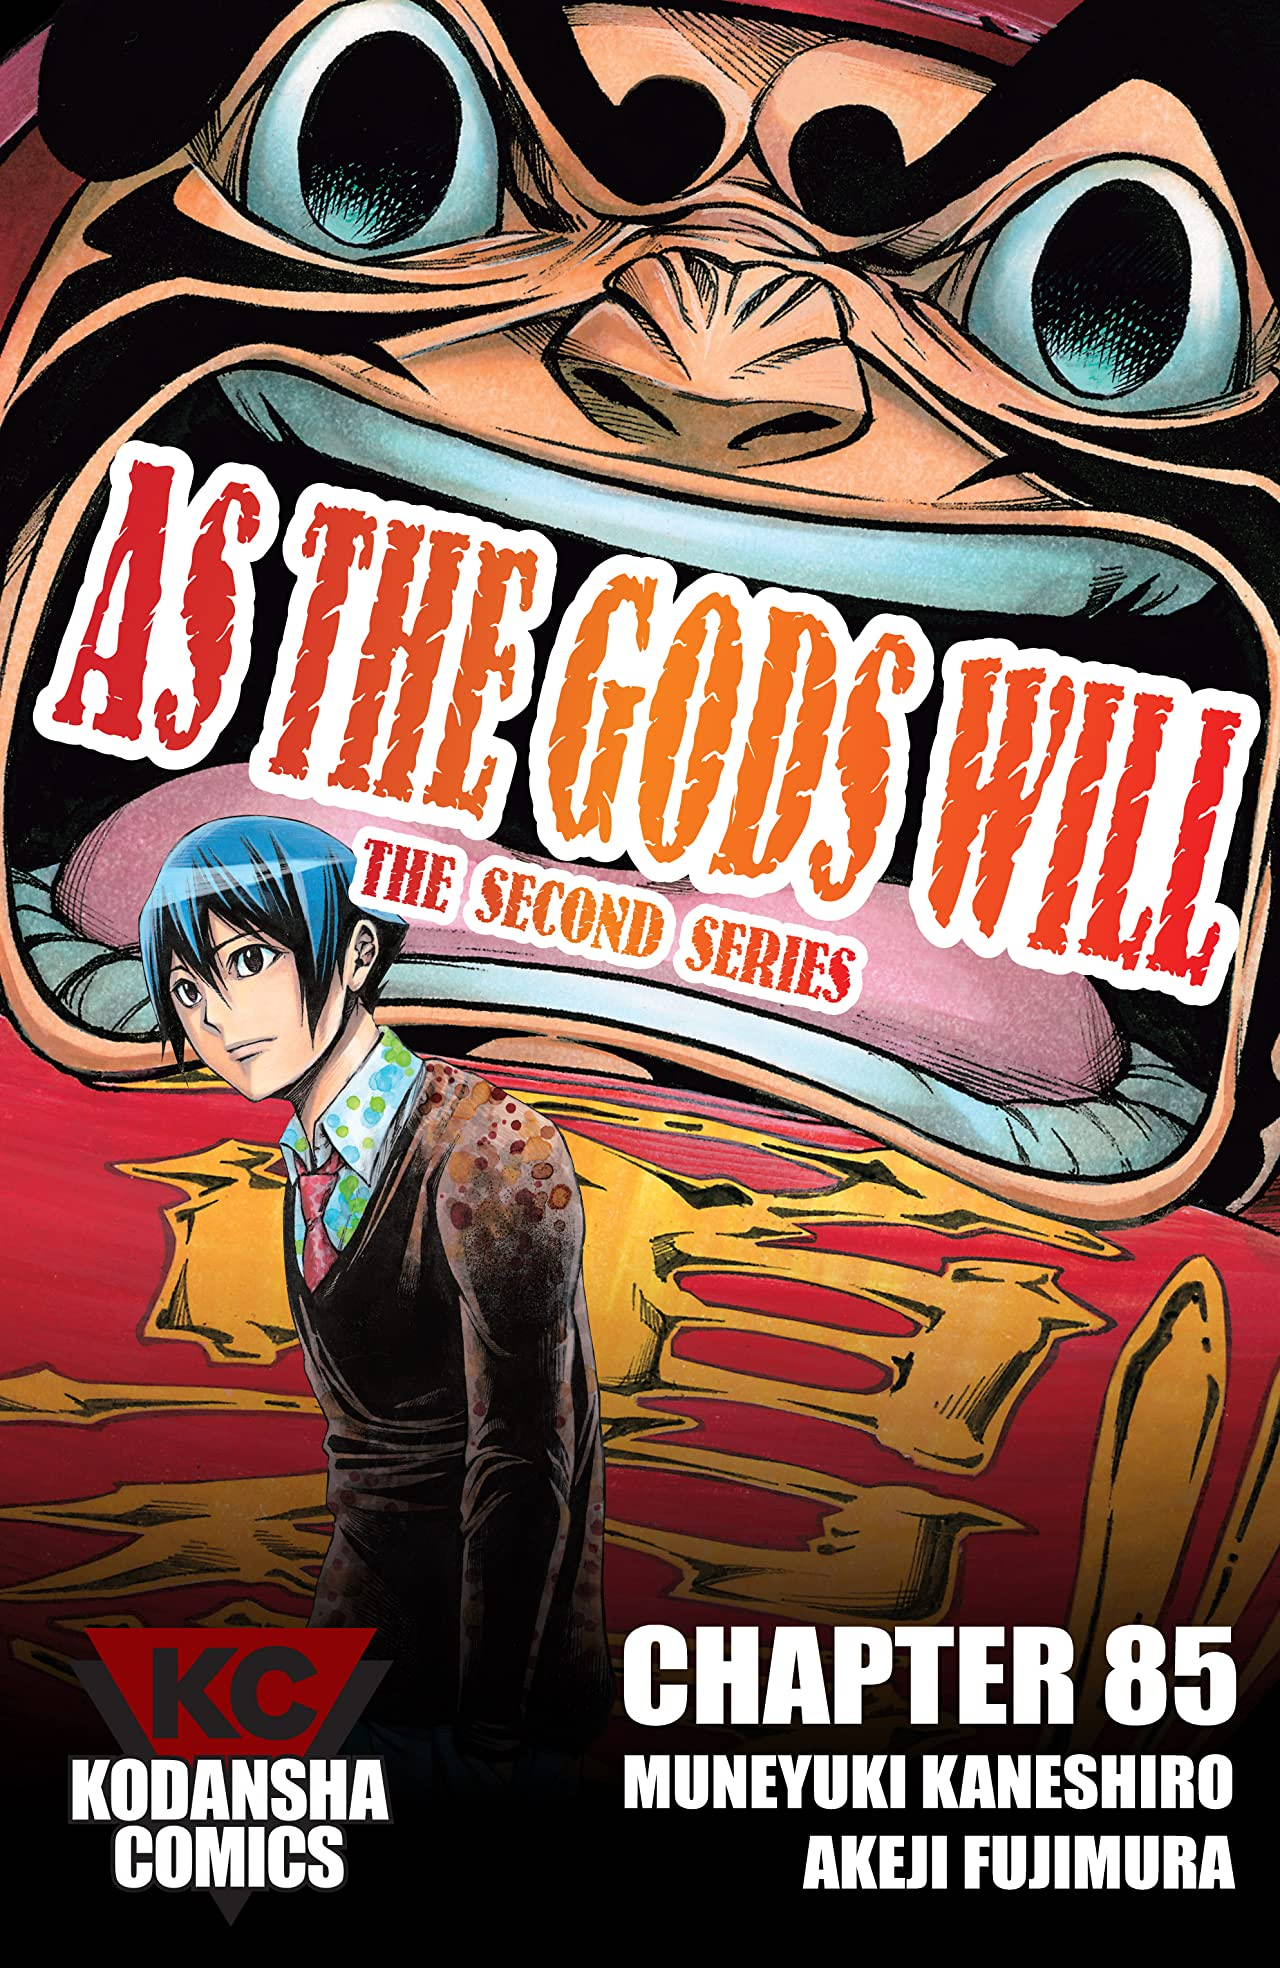 As The Gods Will: The Second Series #85